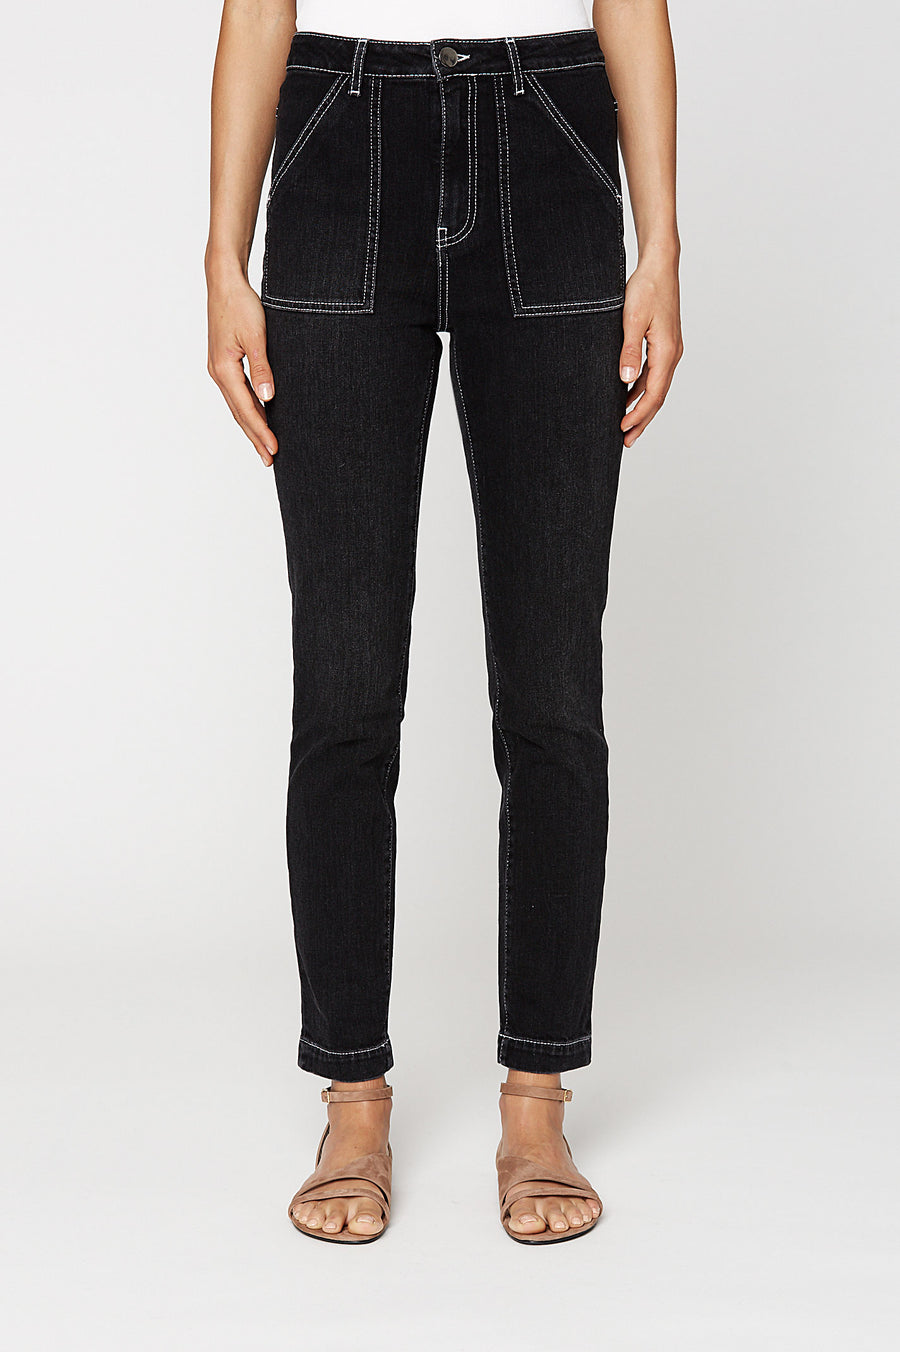 PATCH POCKET JEAN, BLACK color